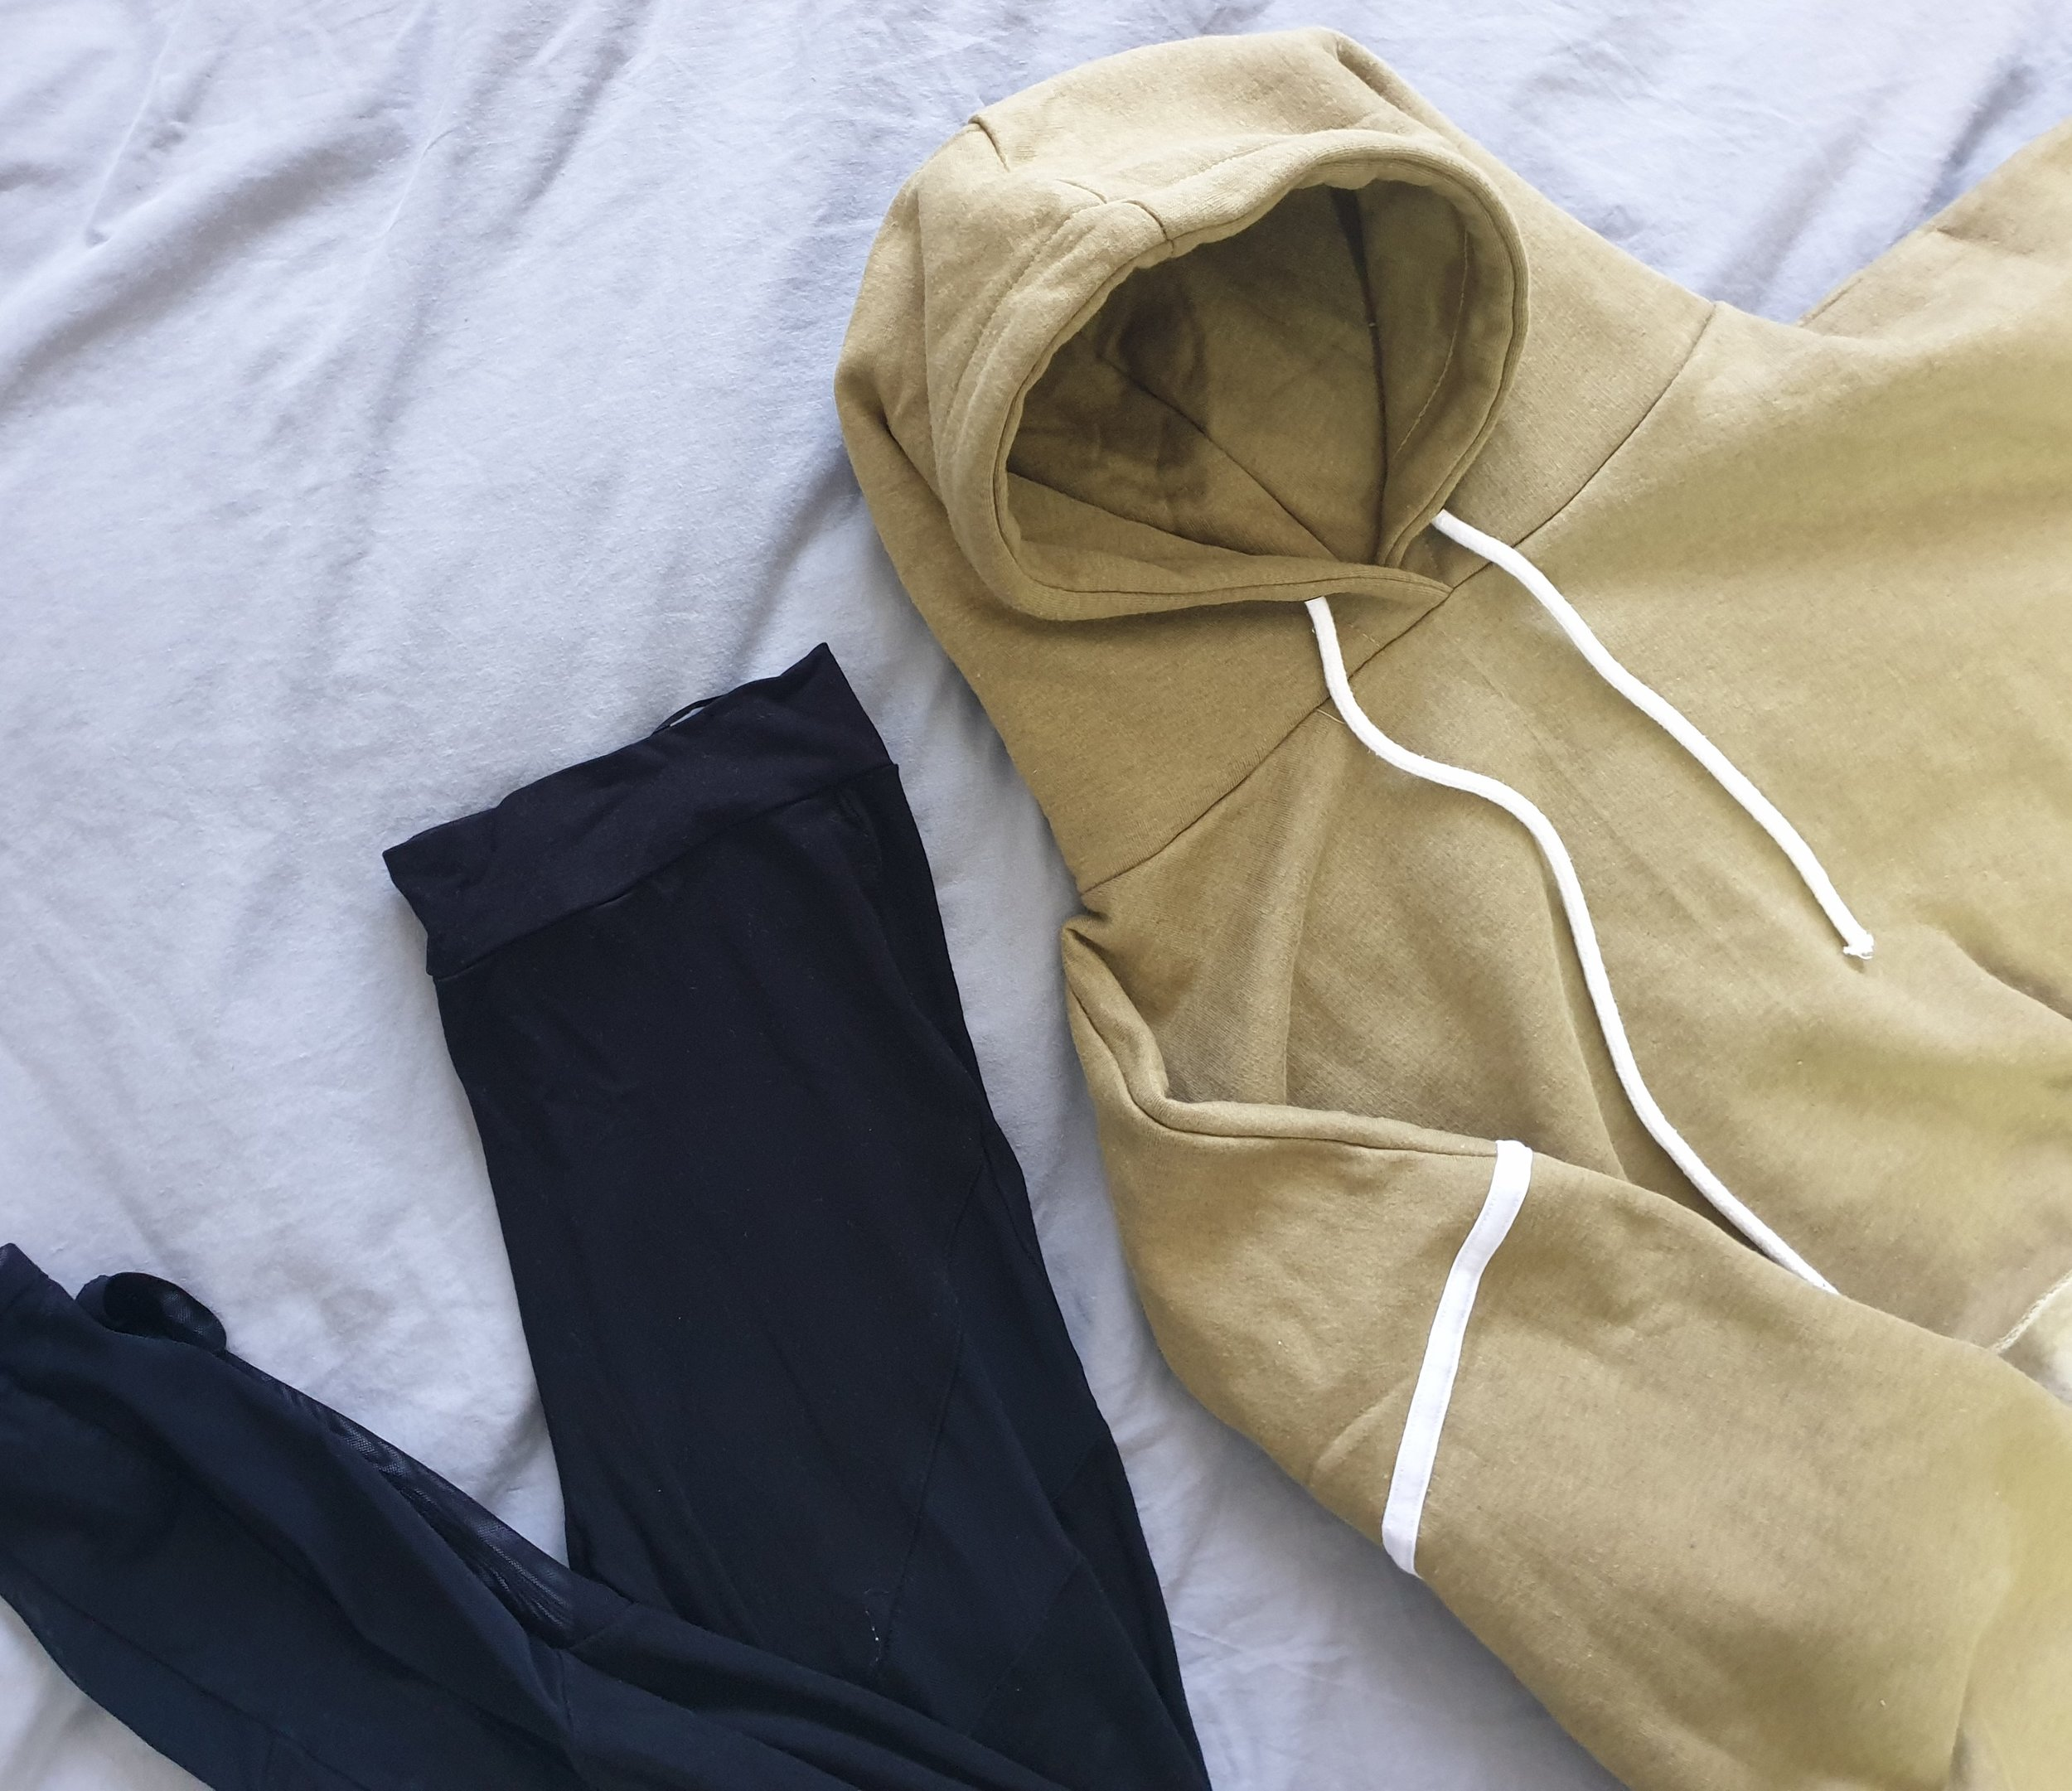 fashion blogger lazy sunday inspired ootd outfit of the day https://femmeluxefinery.co.uk/products/khaki-stripe-hooded-crop-sweater-jumper-gia